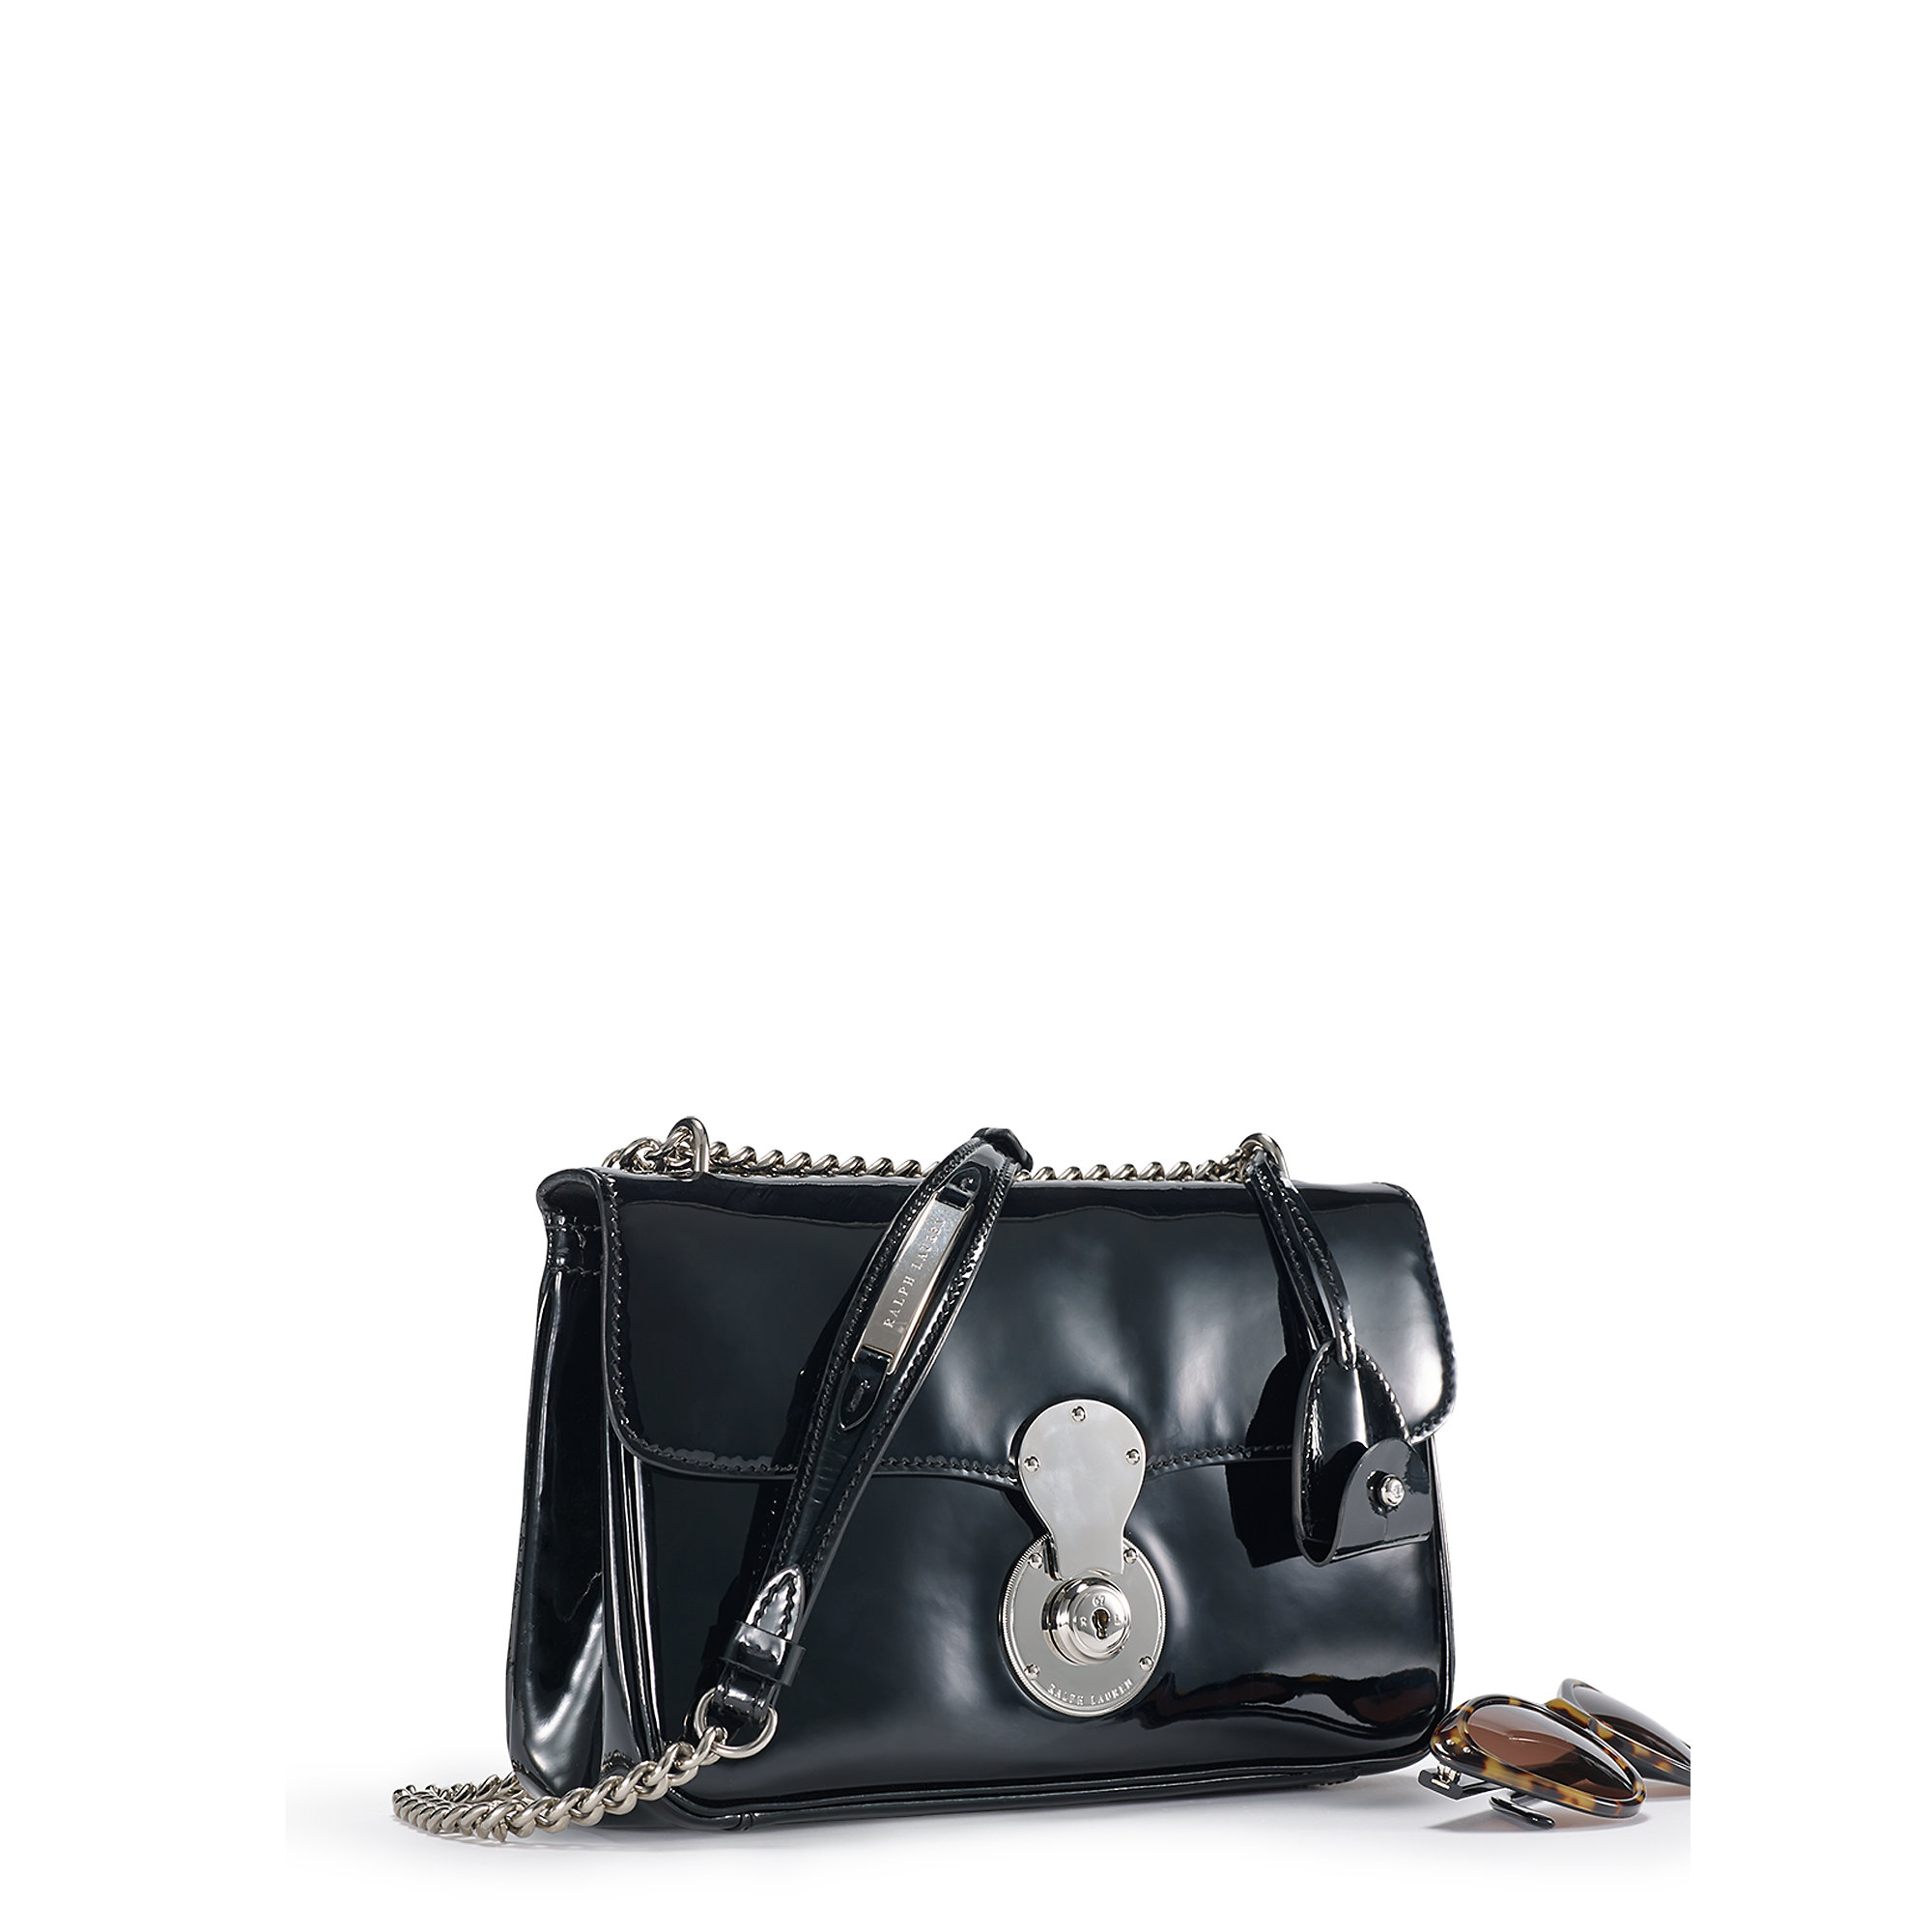 063b867cc0 ... where can i buy lyst ralph lauren patent leather ricky chain bag in  black 1a1a9 85405